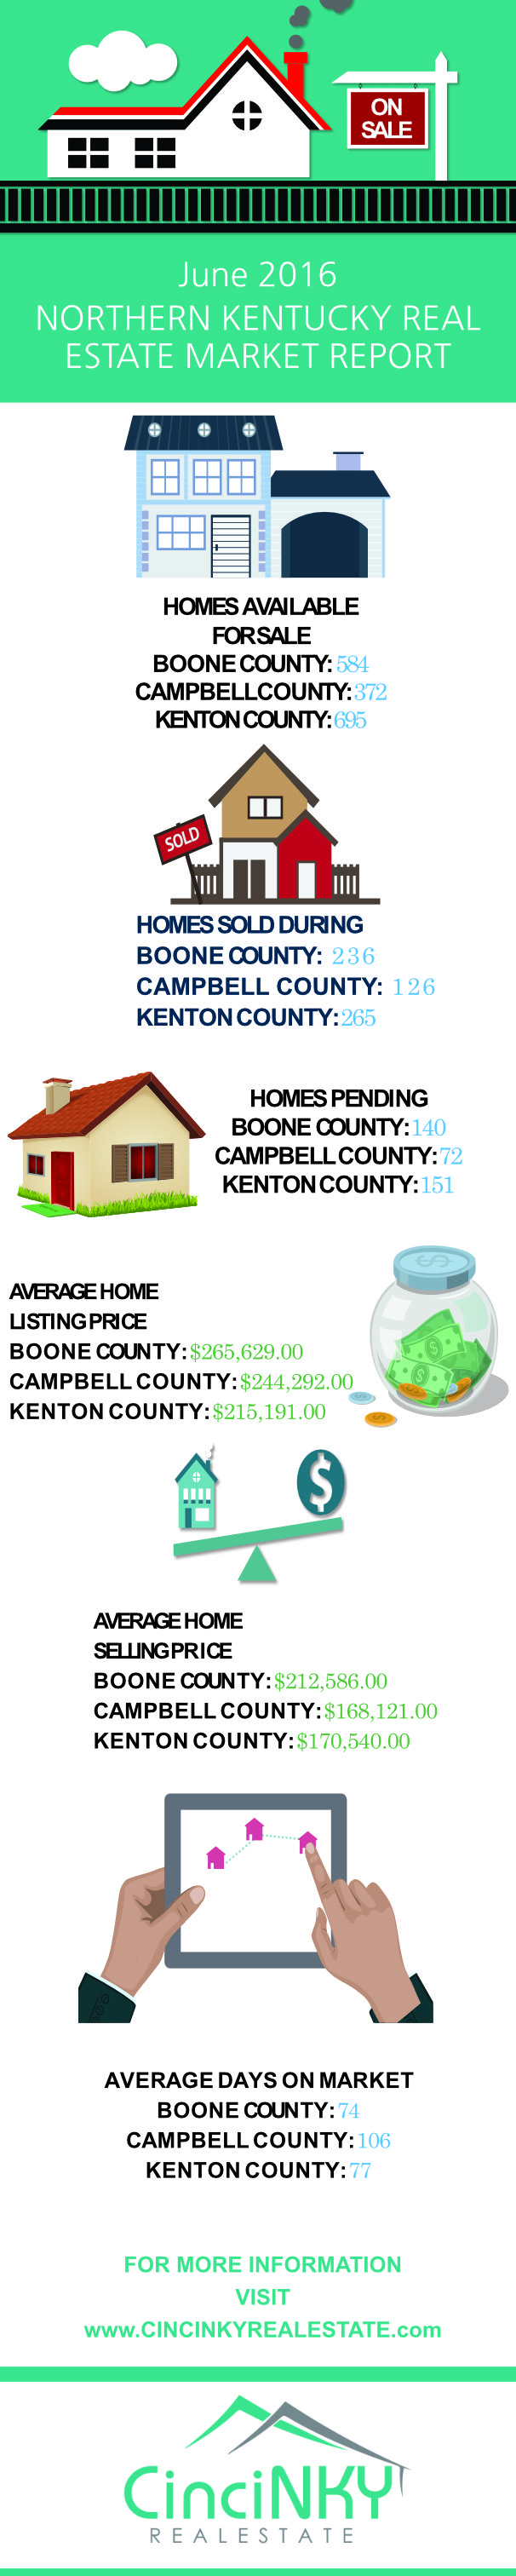 northern kentucky june 2016 real estate market report infographic